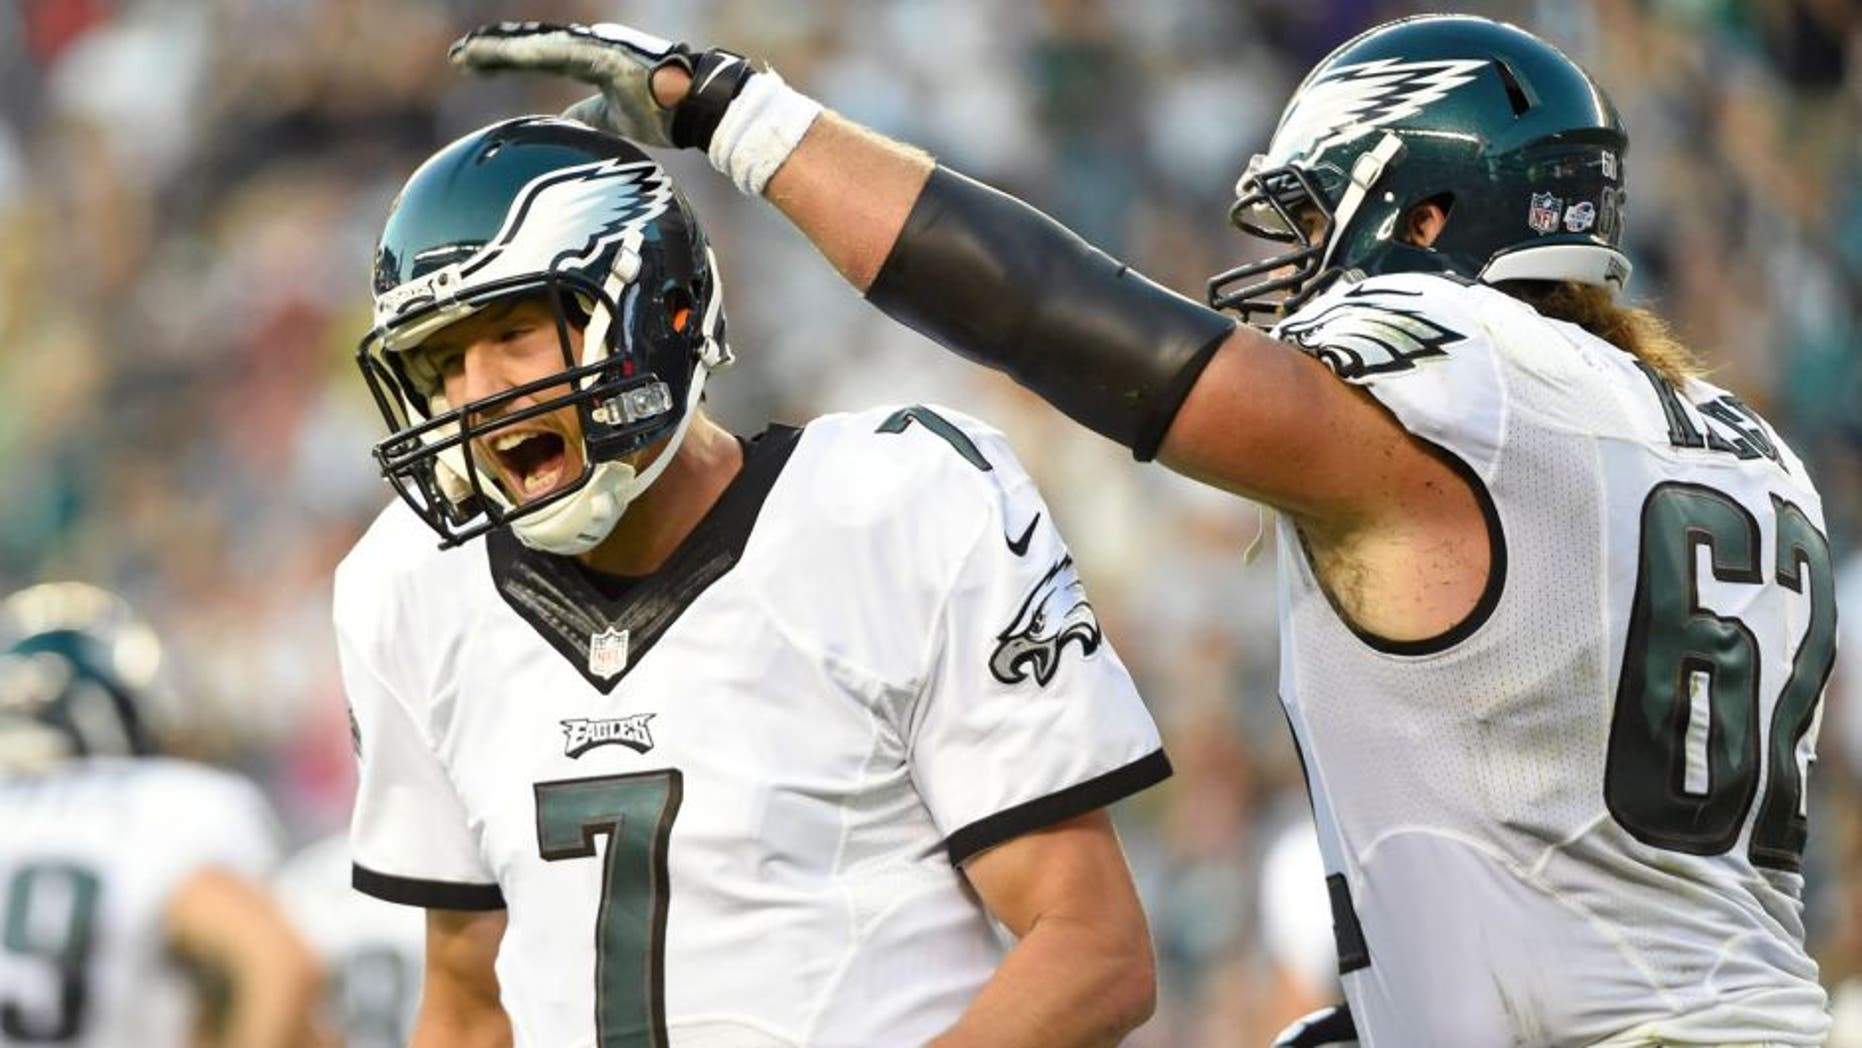 Aug 22, 2015; Philadelphia, PA, USA; Philadelphia Eagles quarterback Sam Bradford (7) celebrates a touchdown with center Jason Kelce (62) against the Baltimore Ravens during the first quarter at Lincoln Financial Field. Mandatory Credit: Eric Hartline-USA TODAY Sports